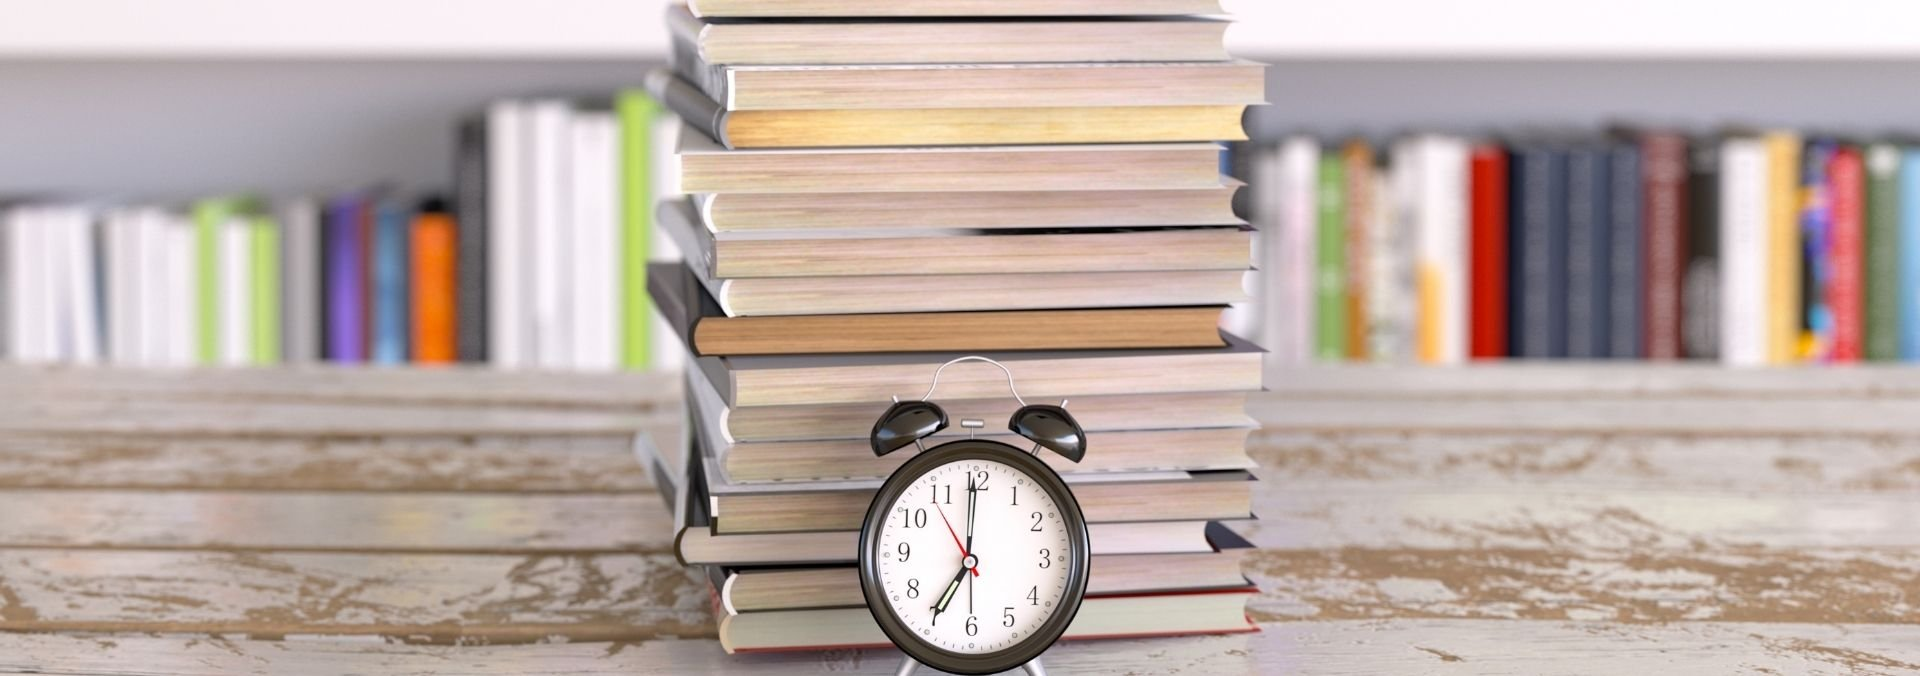 college books with clock